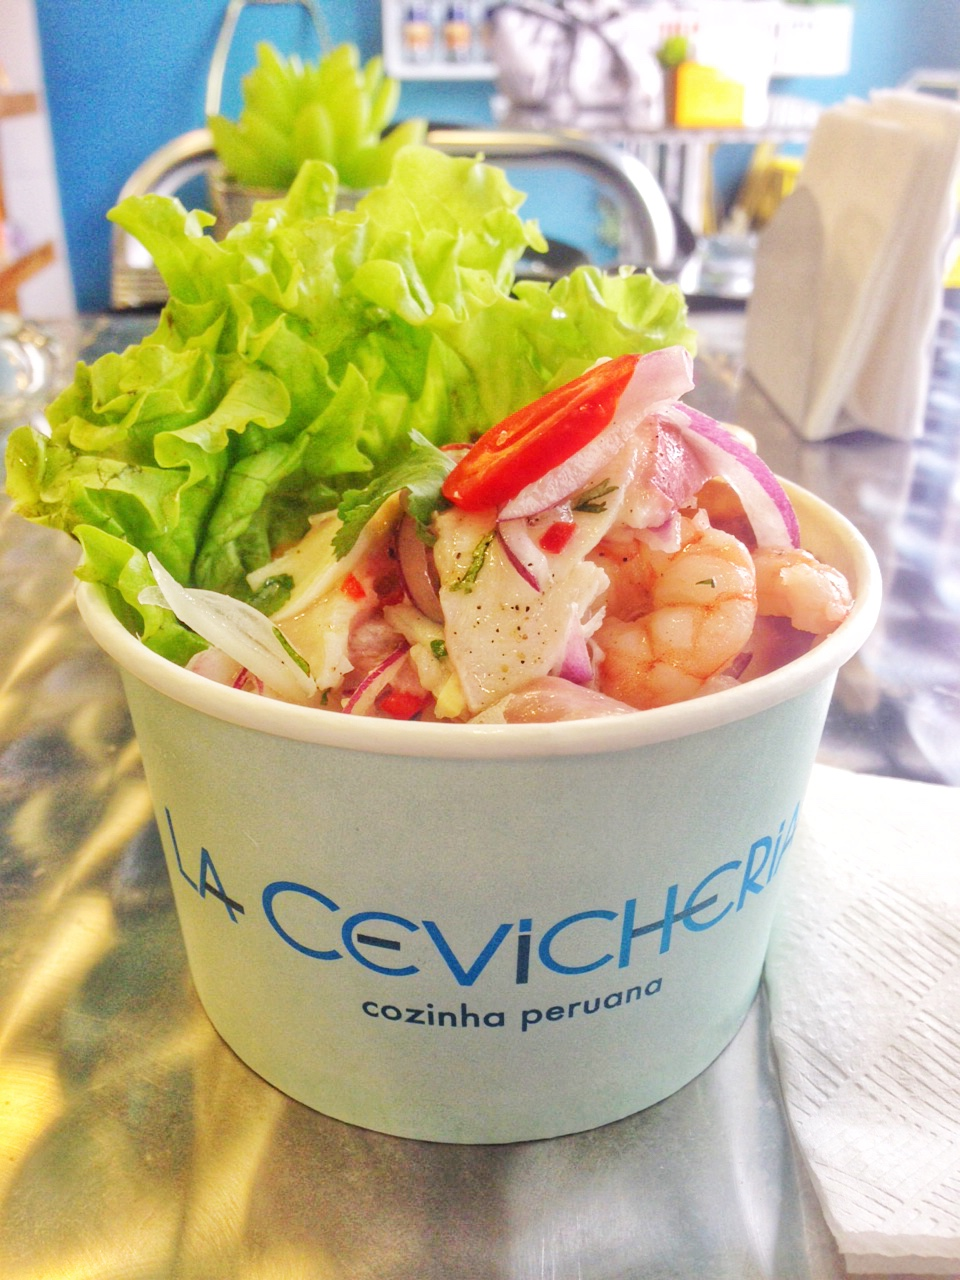 La Cevicheria - Blog Fit Food Ideas